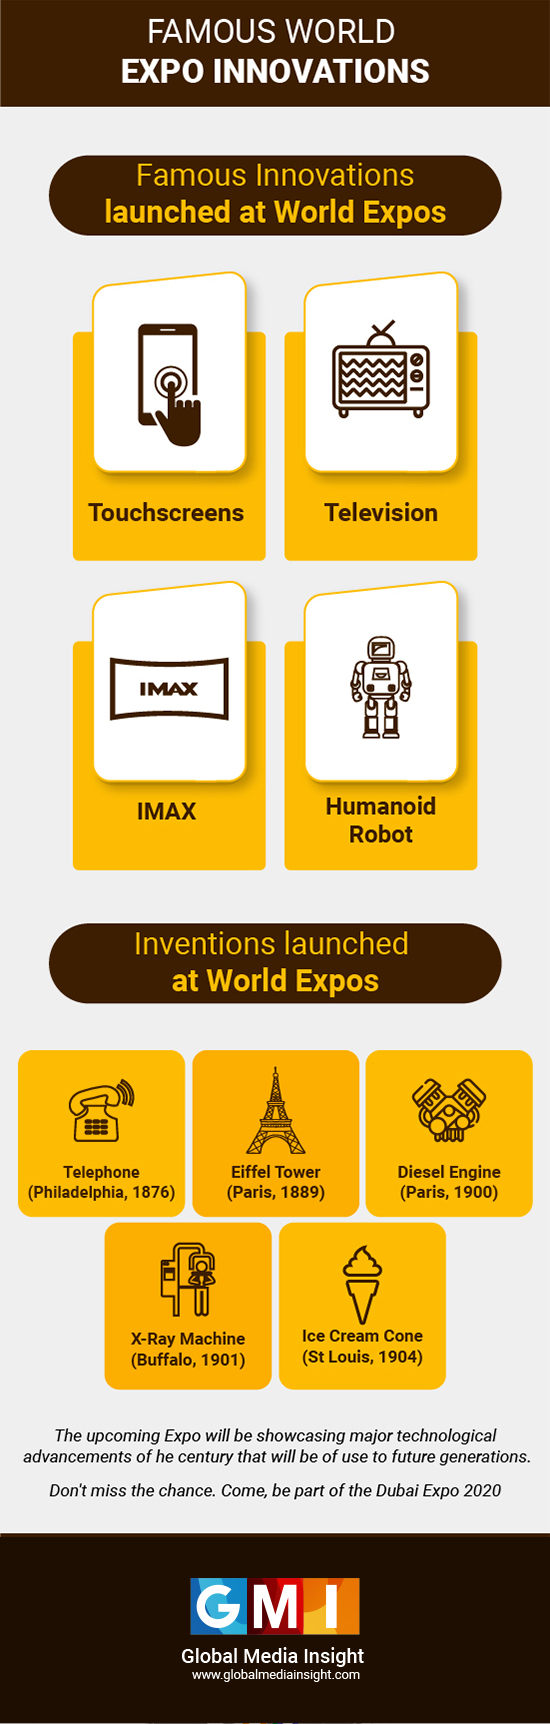 world expo inventions